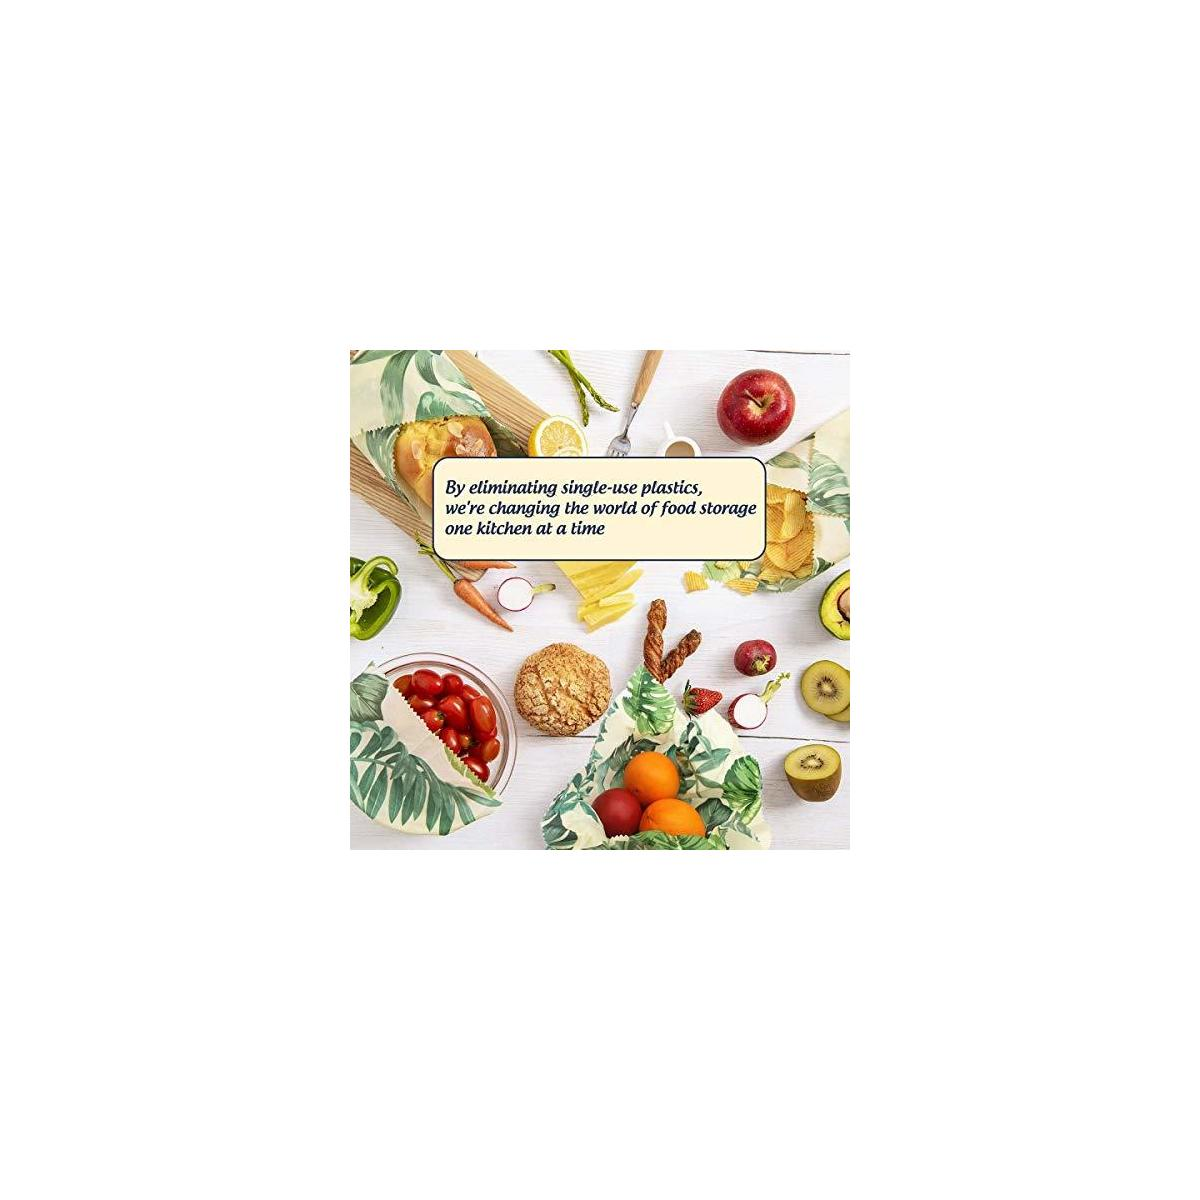 Beeswax Wraps Assorted Set Of 4 | No Synthetic Wax or Chemicals – Holds for Up to a Year | Sustainable and Reusable Beeswax Food Wraps with Jojoba Oil | Includes Beeswax Bar & String Tie with Button